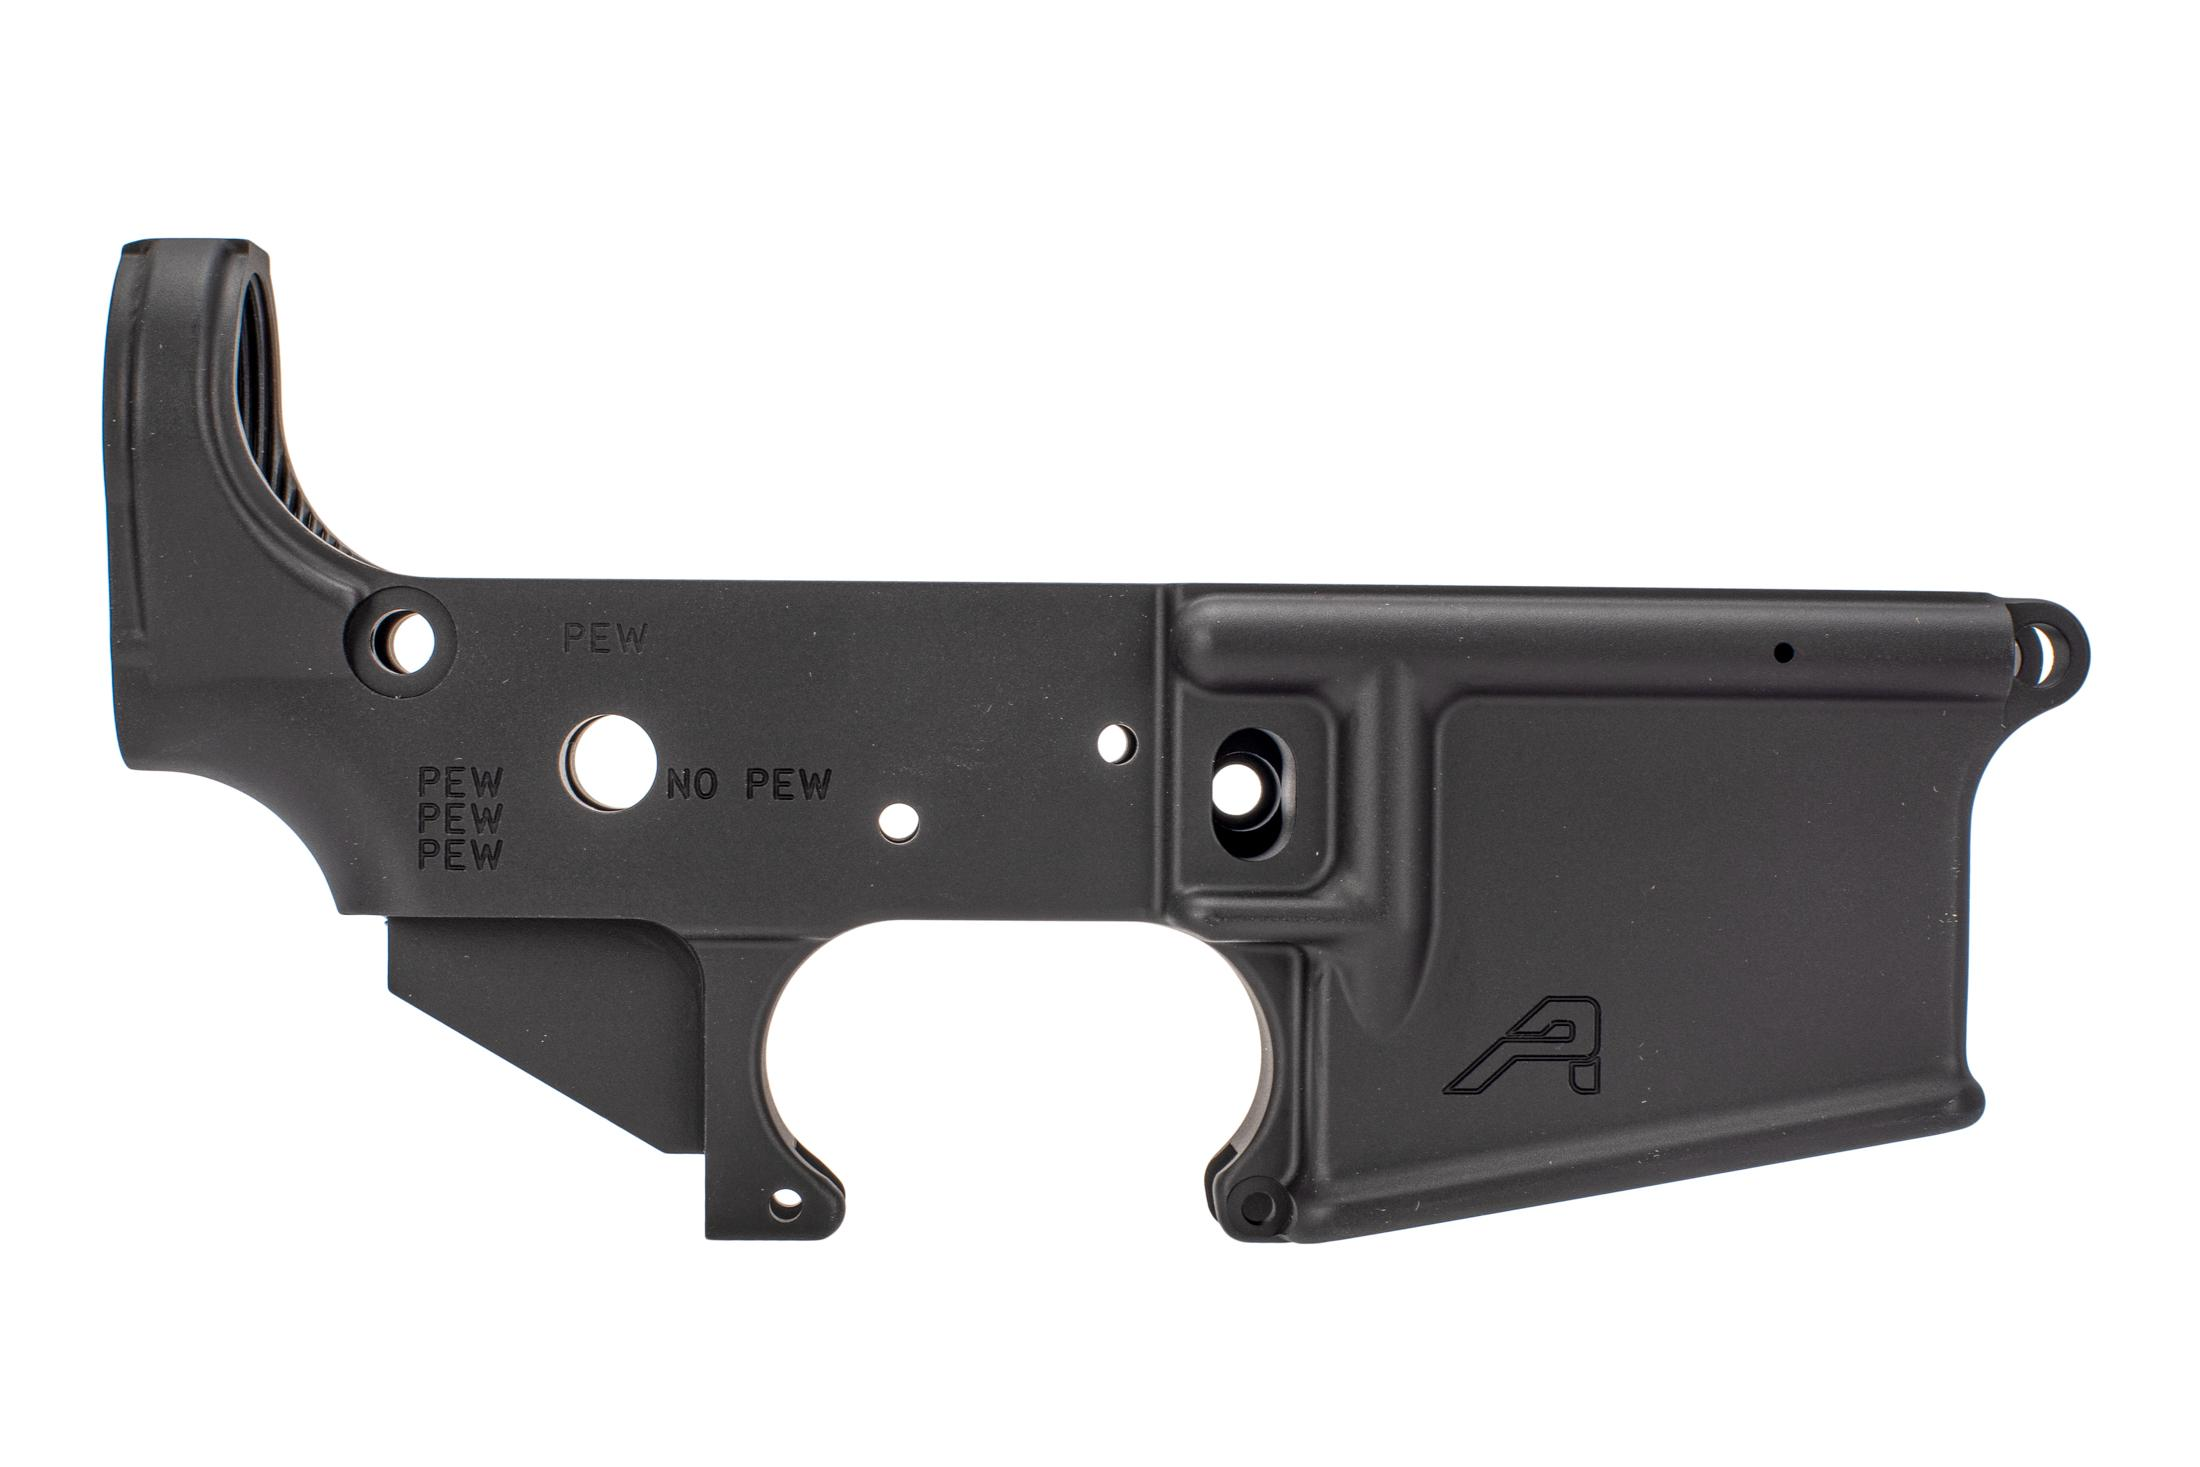 aero precision stripped lower receiver for the ar-15 with PEW special edition engravings